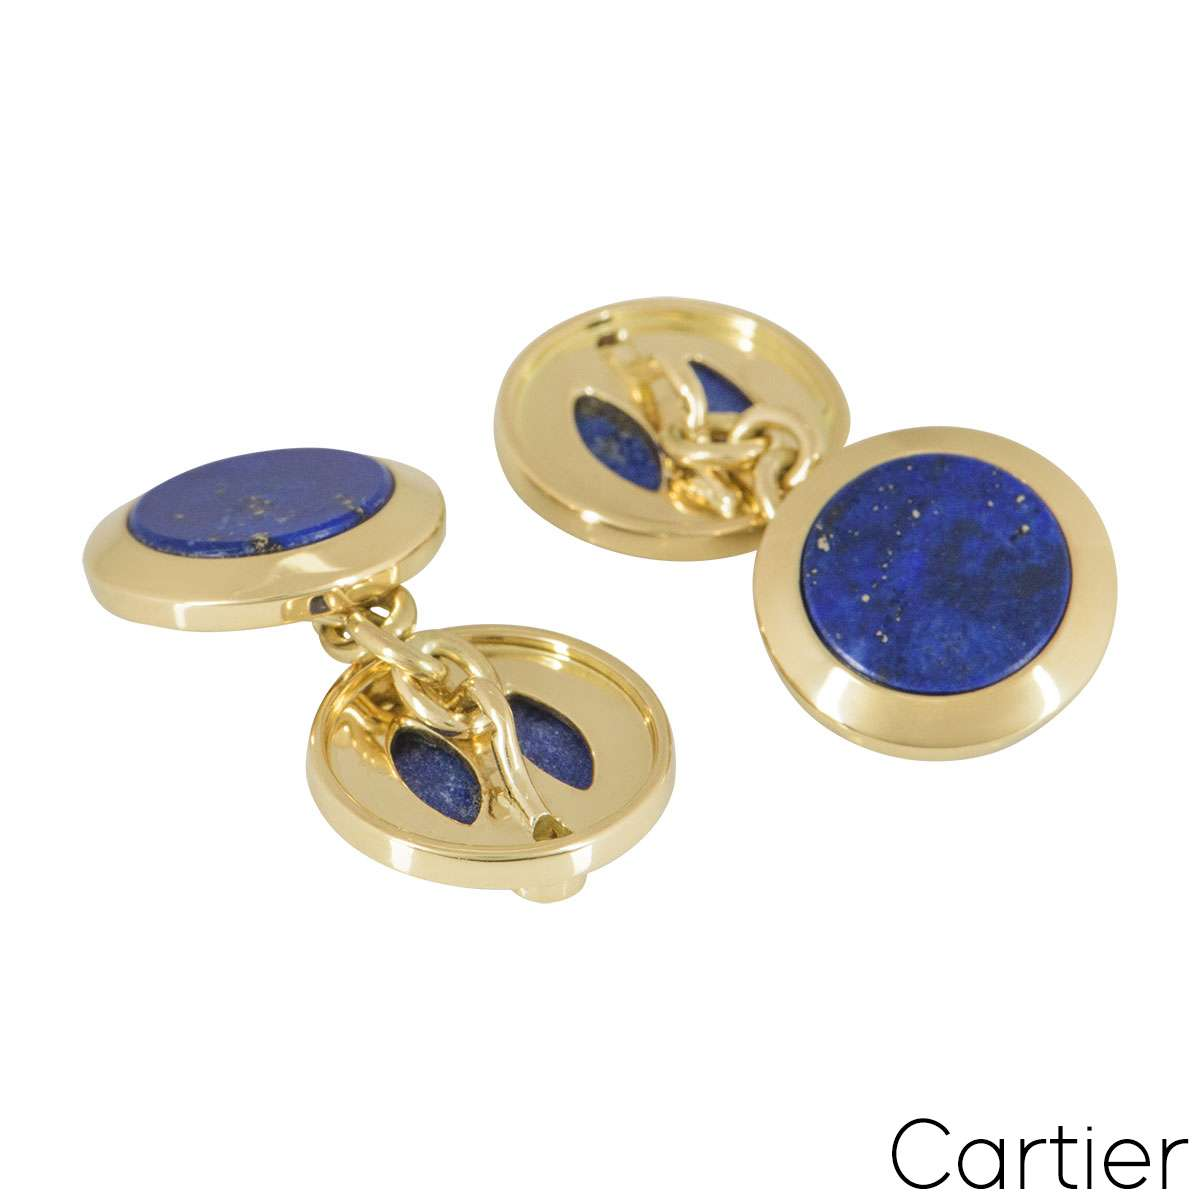 Cartier Yellow Gold Diamond And Lapis Cufflinks